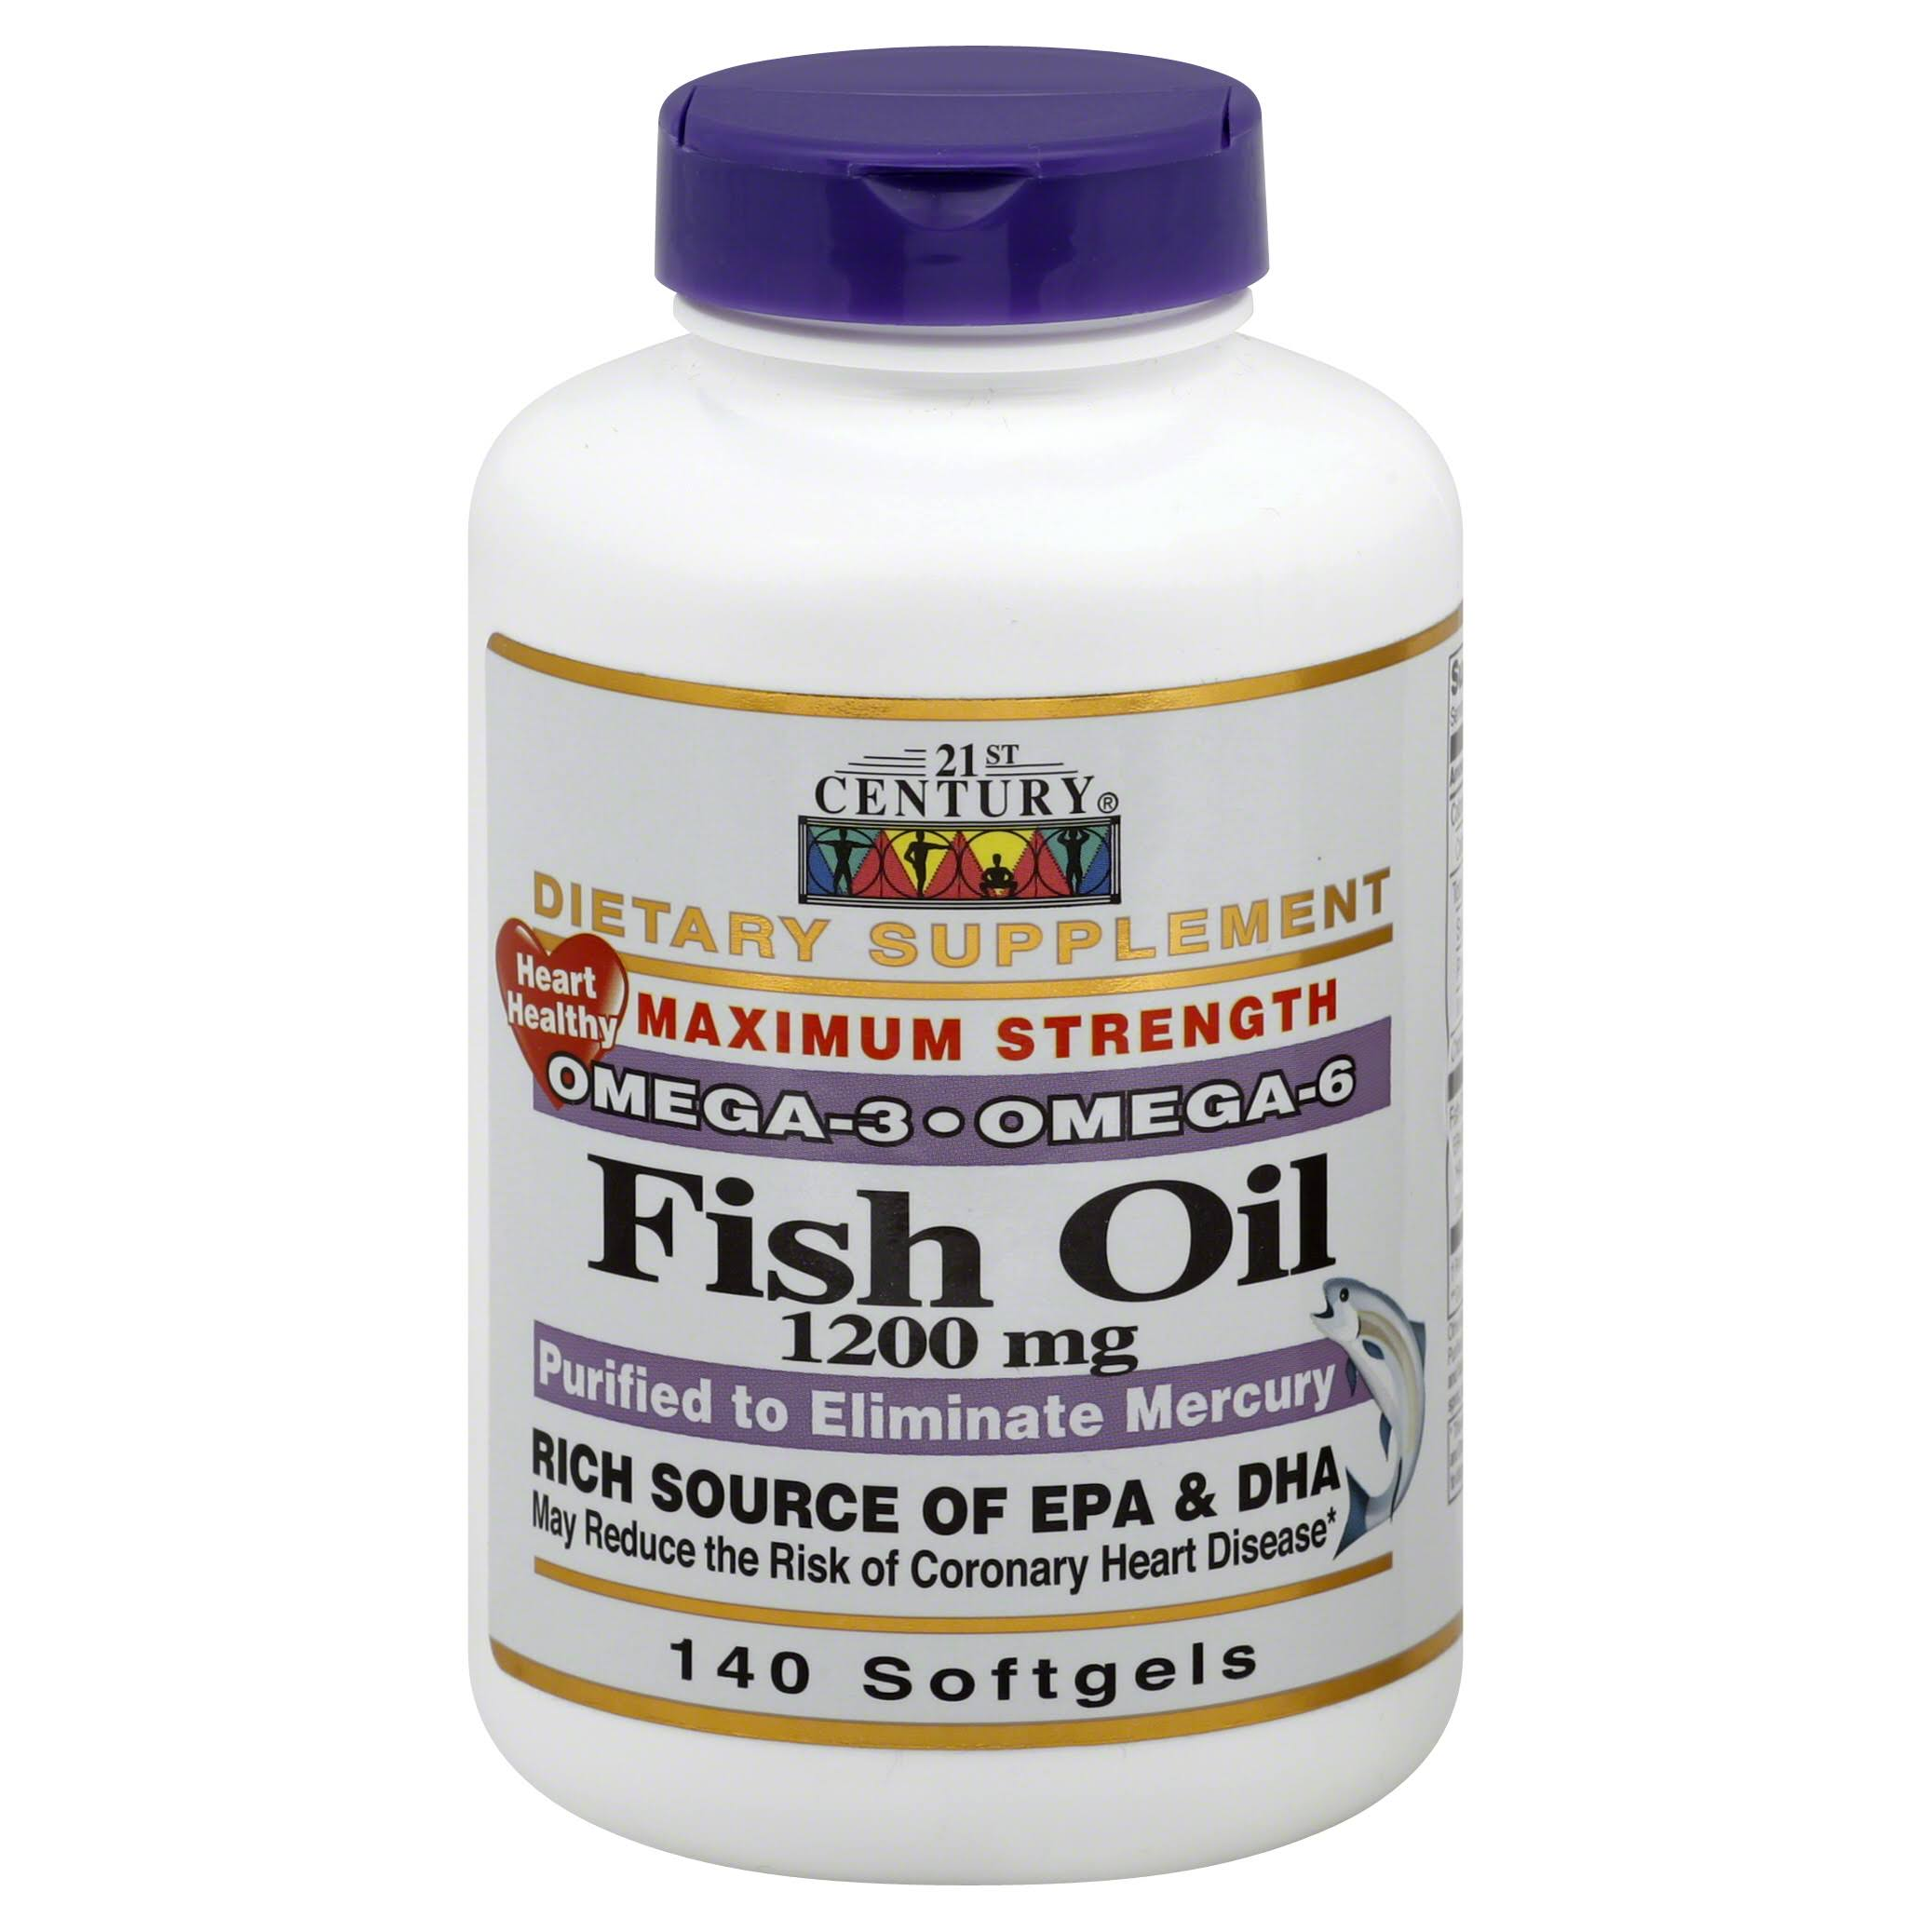 21st Century Maximum Strength Omega-3 Fish Oil 1200mg Softgels - x140